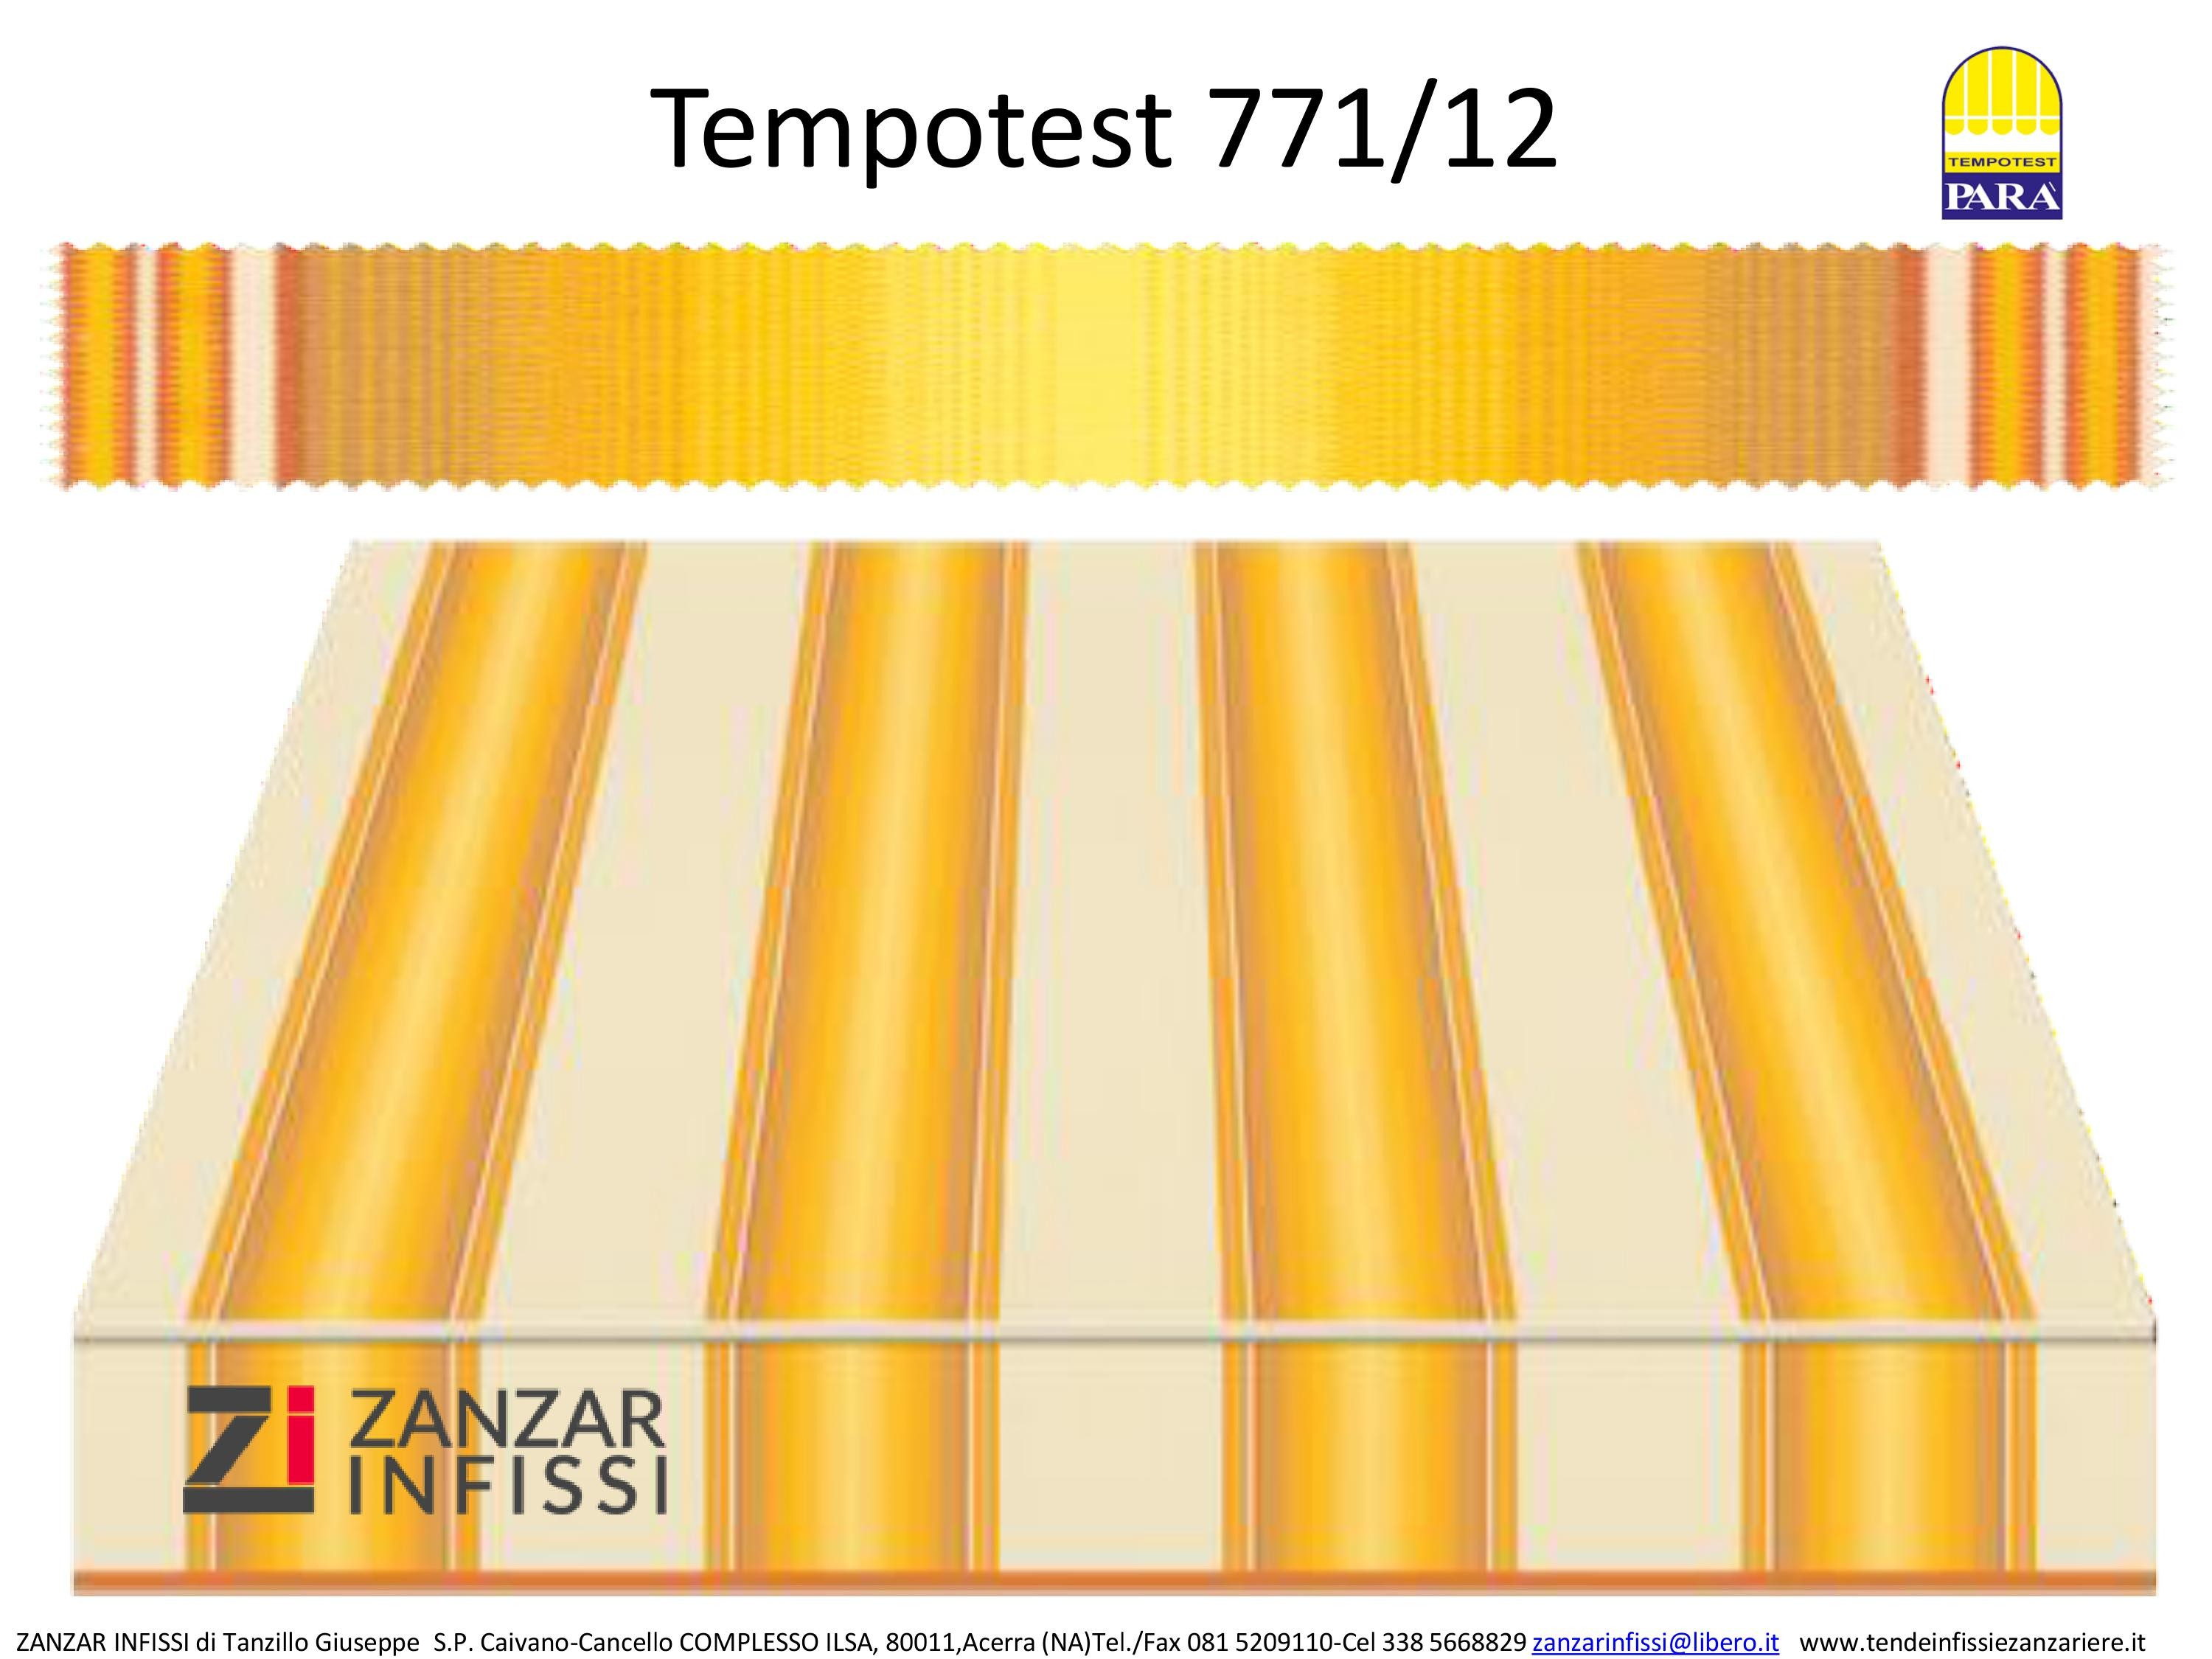 Tempotest 771/12